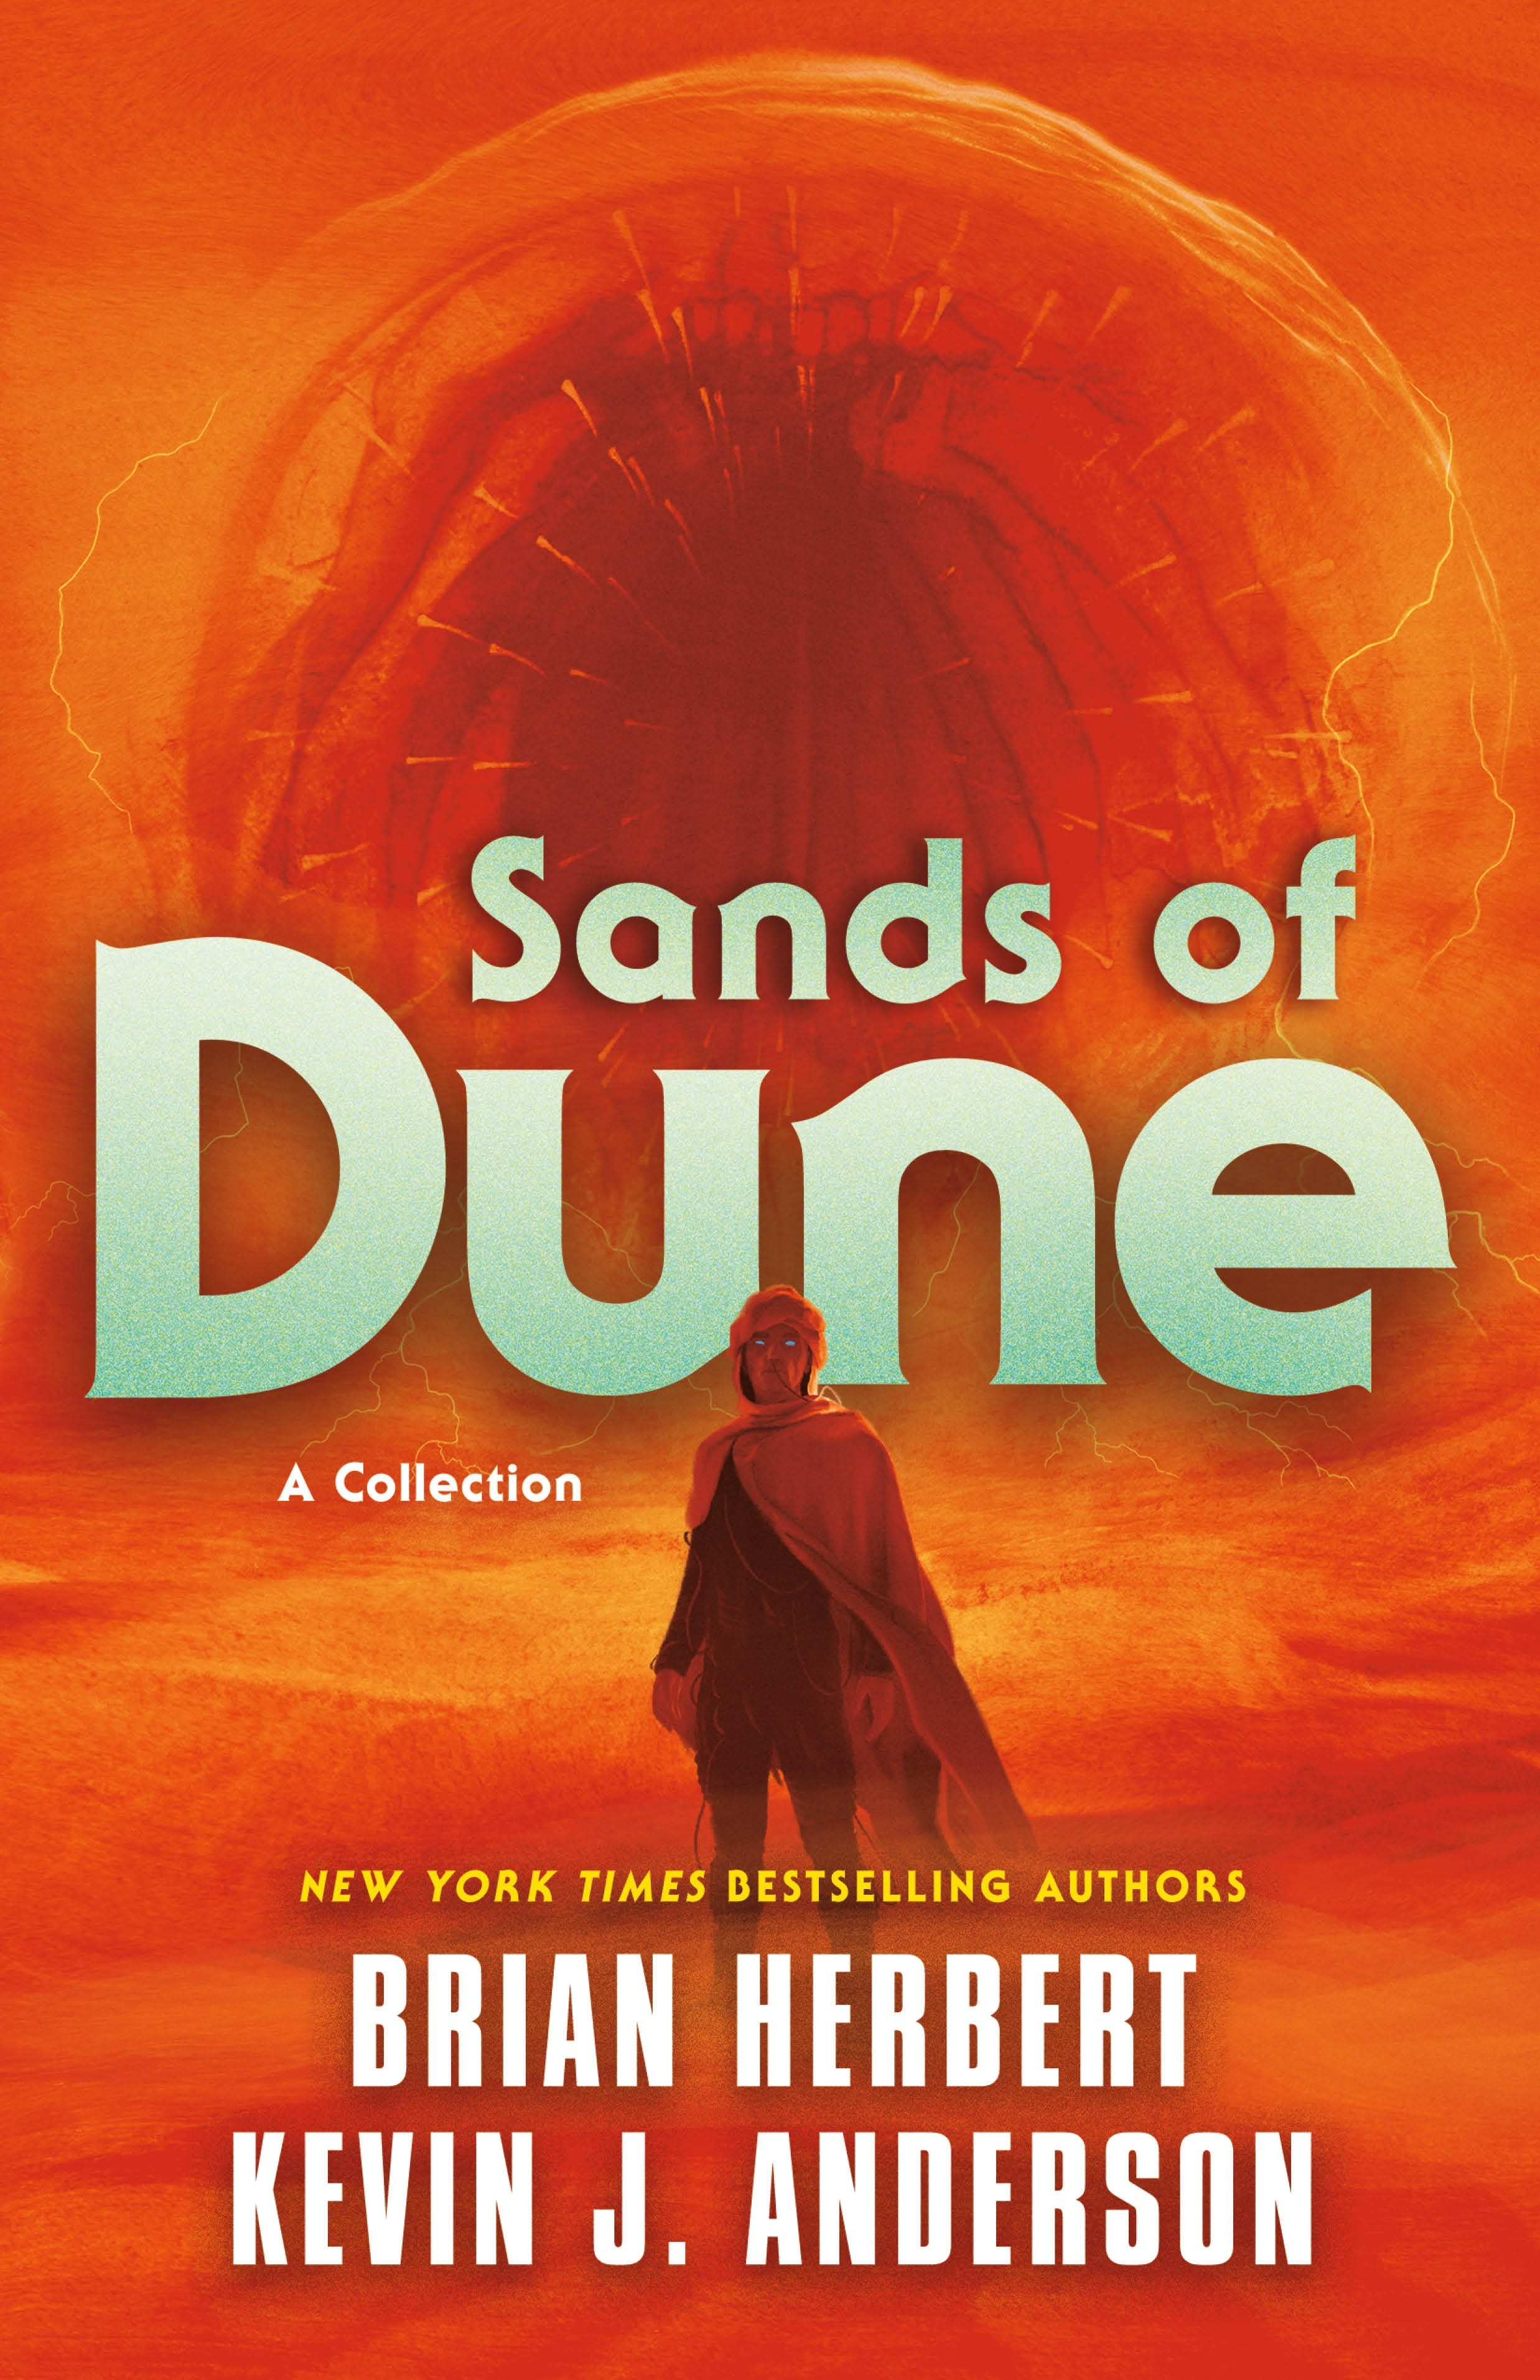 Image of Sands of Dune